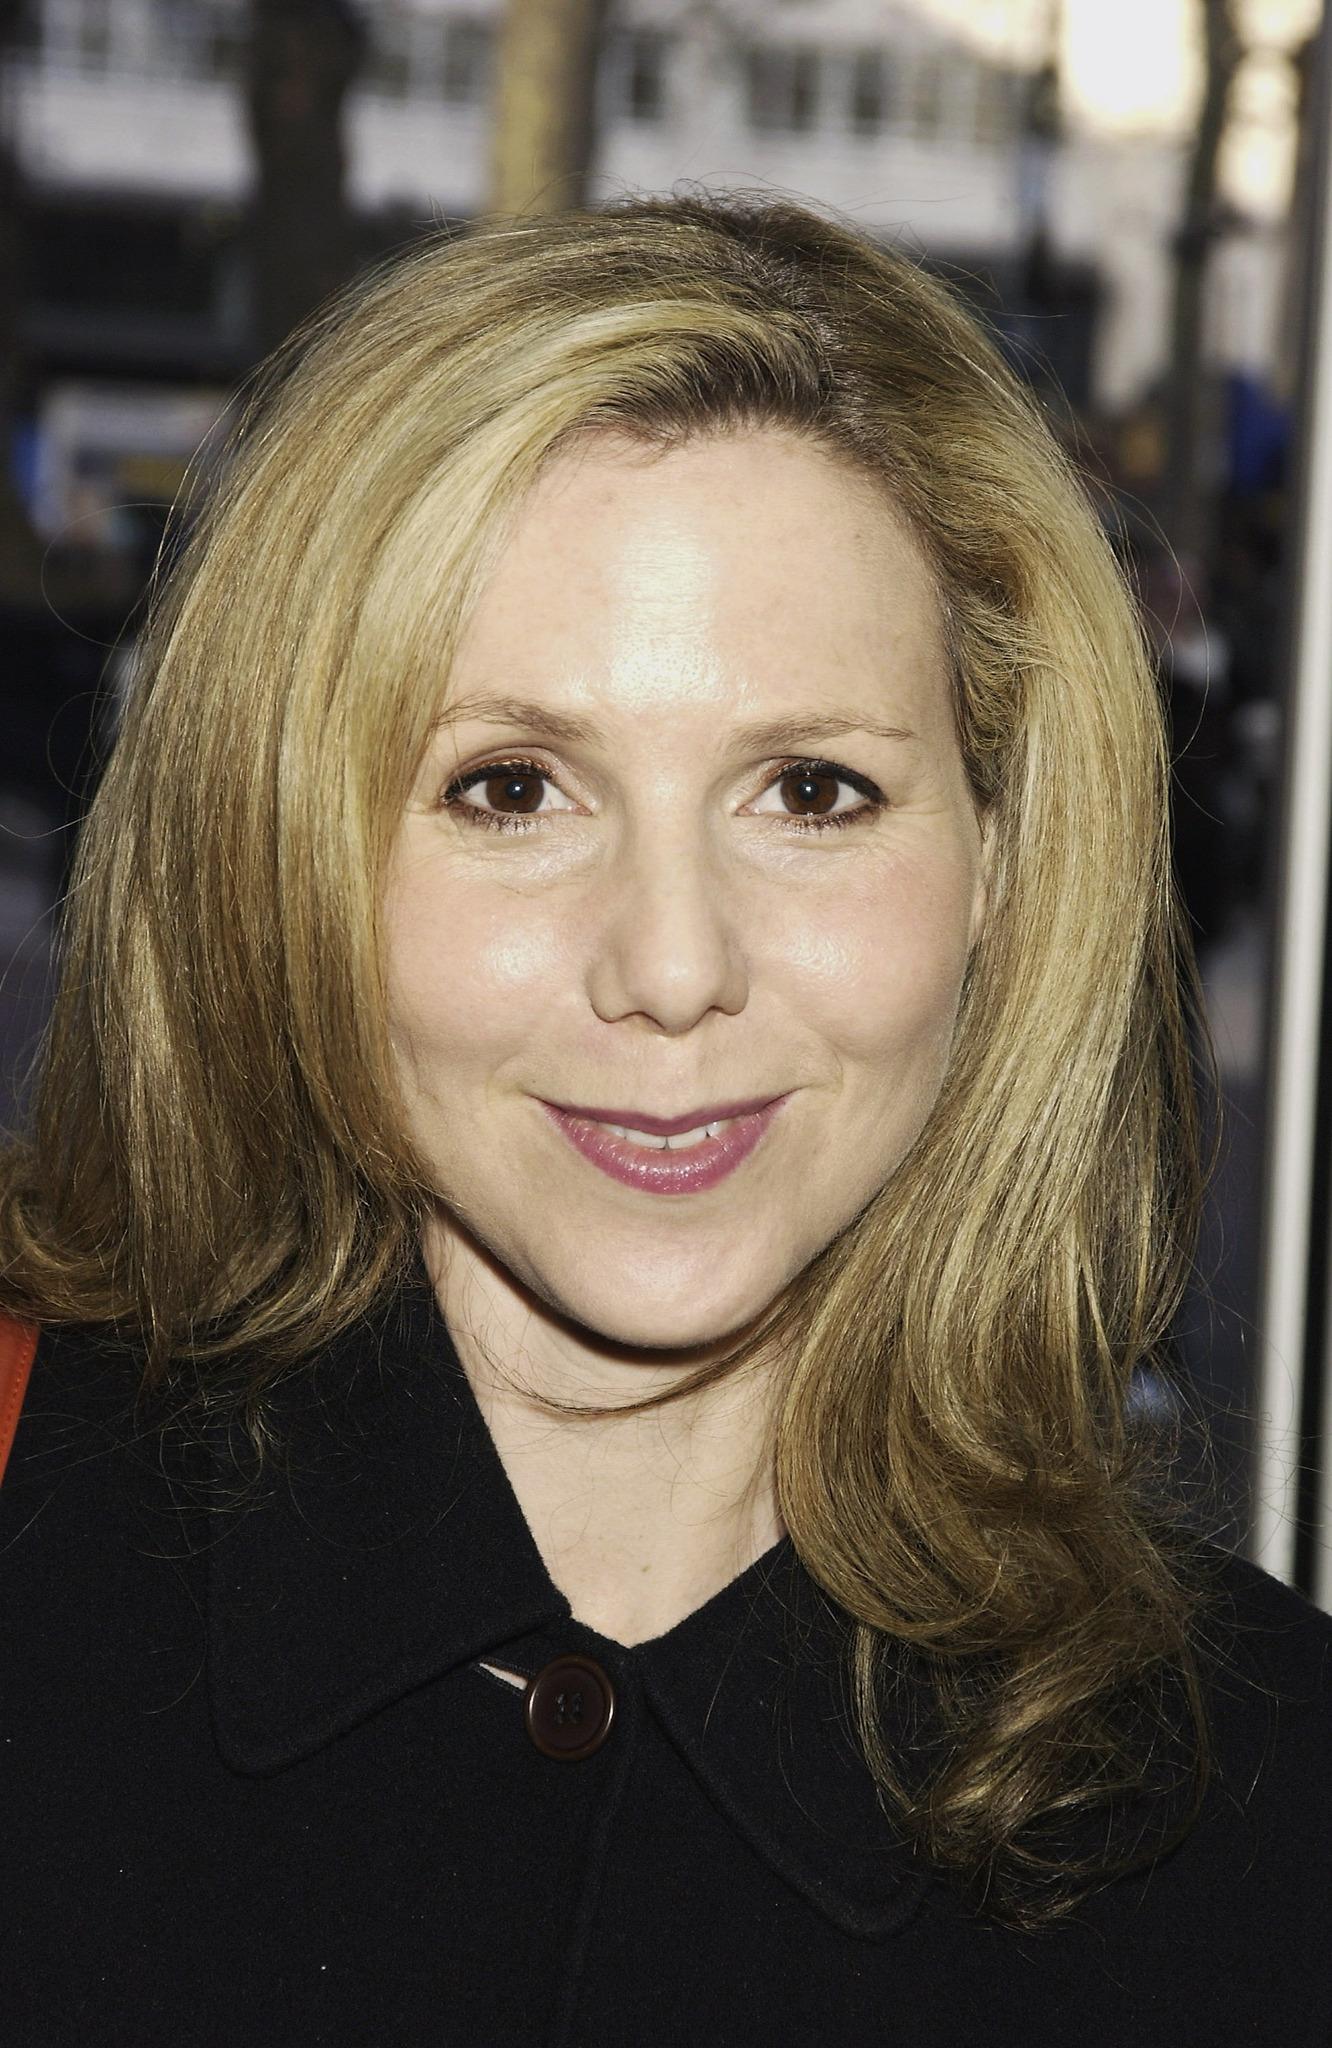 Sally Phillips (born 1970)